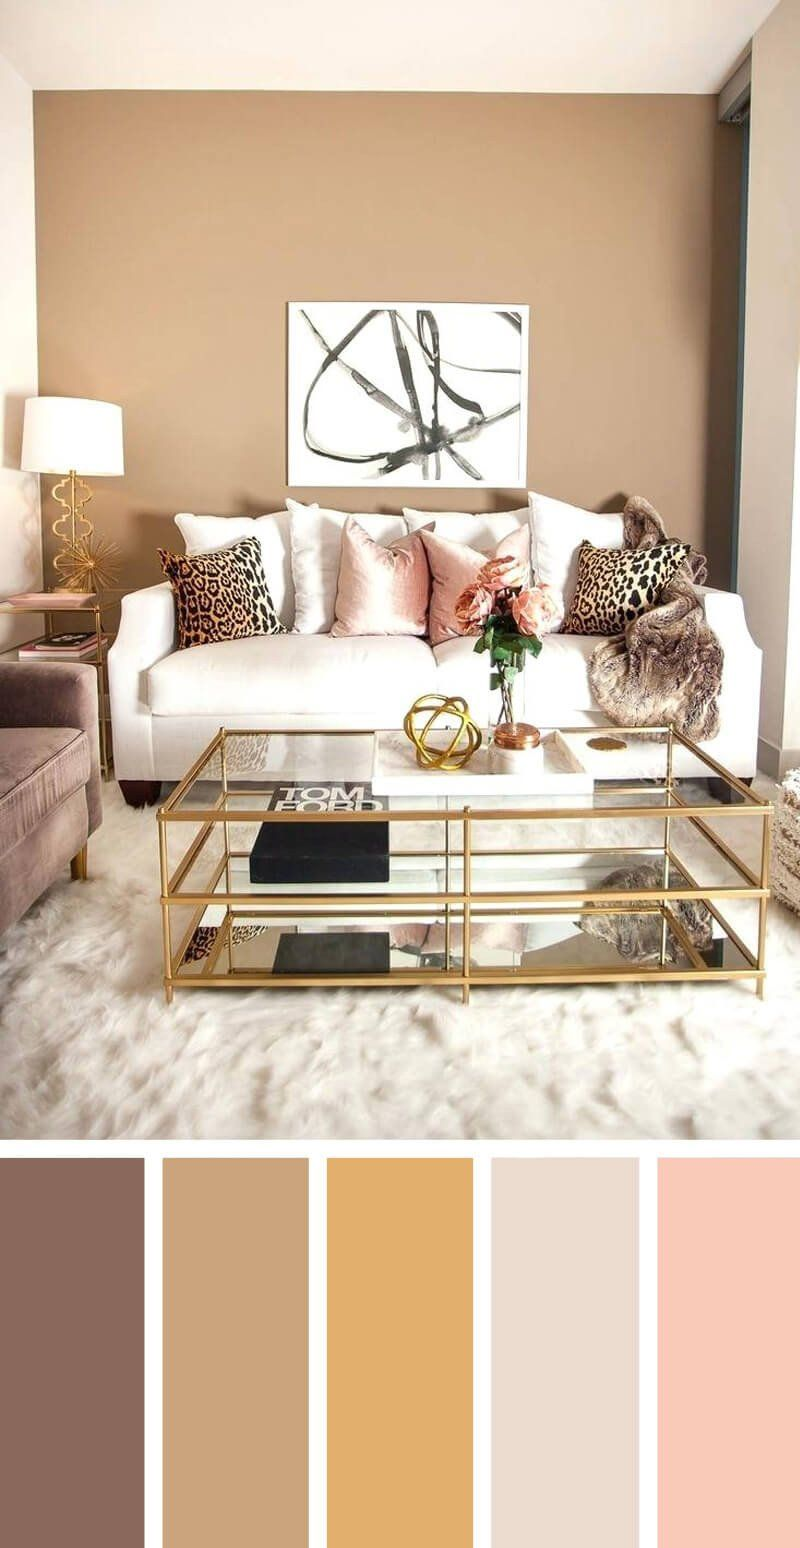 Brown Color Schemes For Living Room 11 Best Living Room Color Scheme Ideas And Designs F In 2020 Modern Living Room Colors Living Room Color Schemes Room Color Schemes